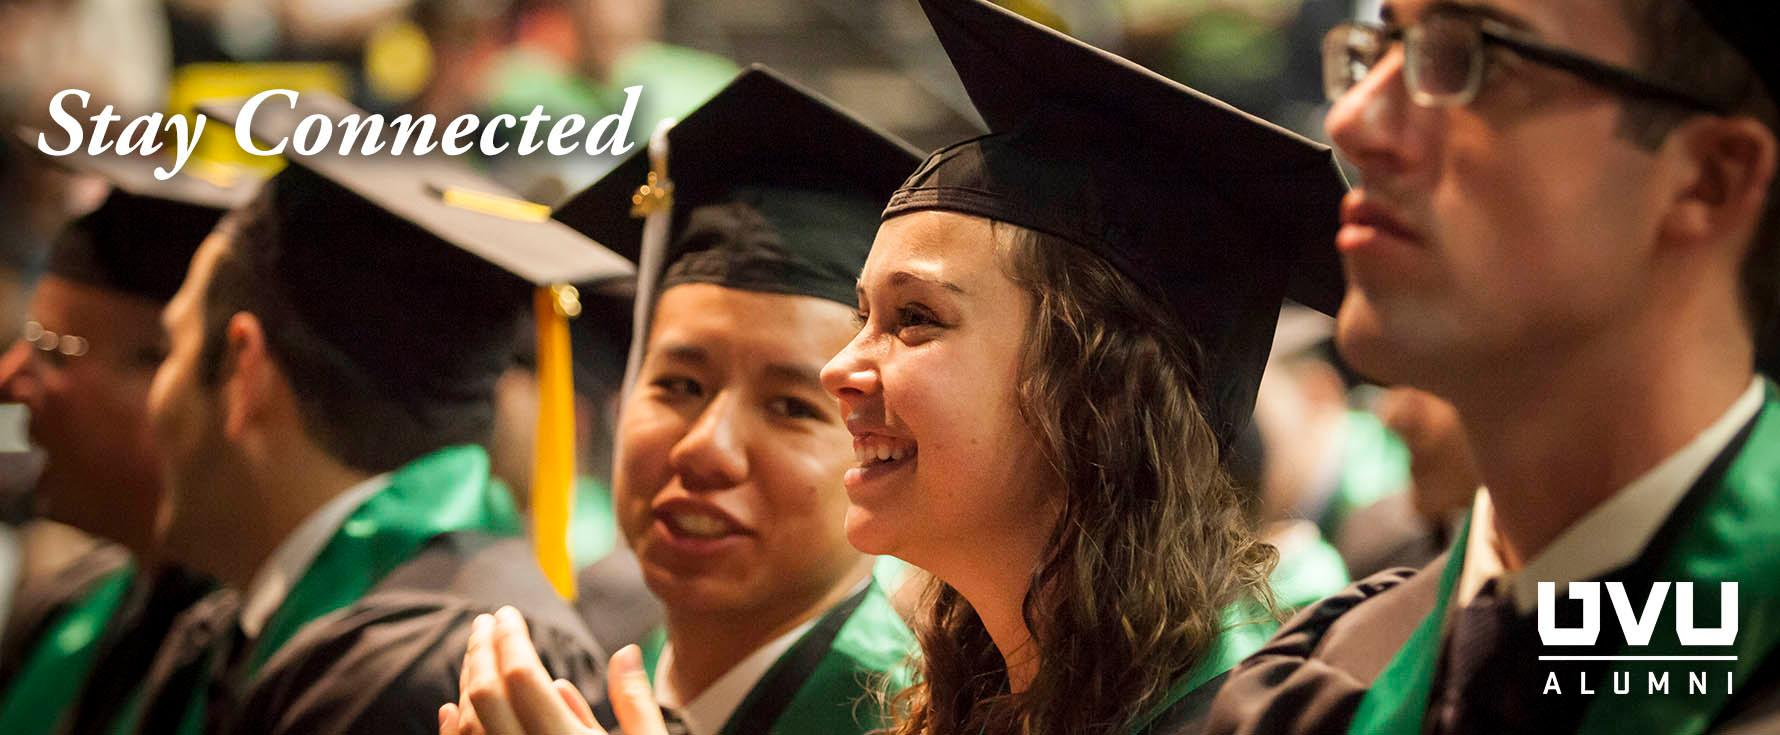 Stay connected with the UVU Alumni Association.